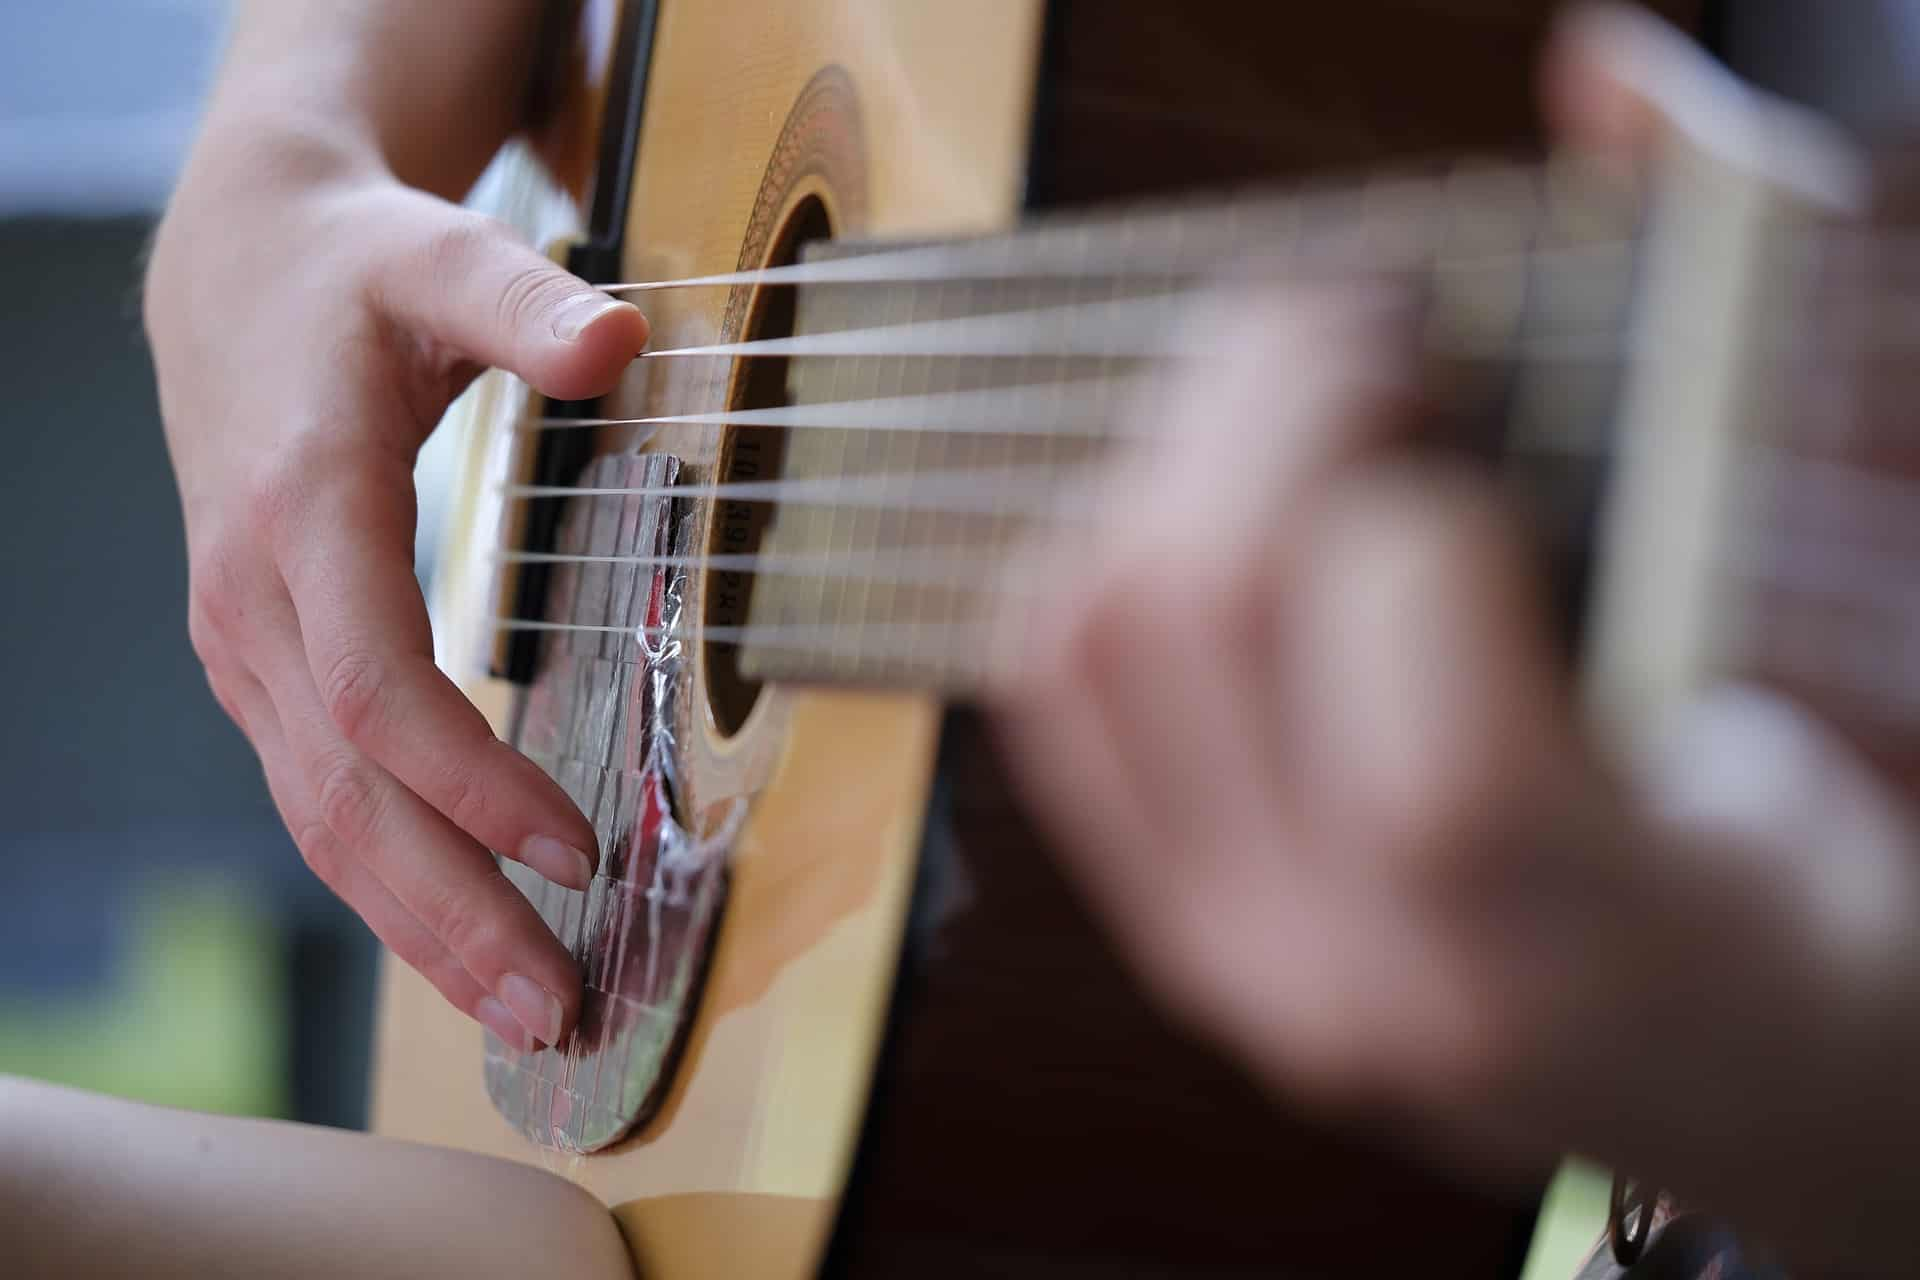 Closeup of a hand playing the guitar.